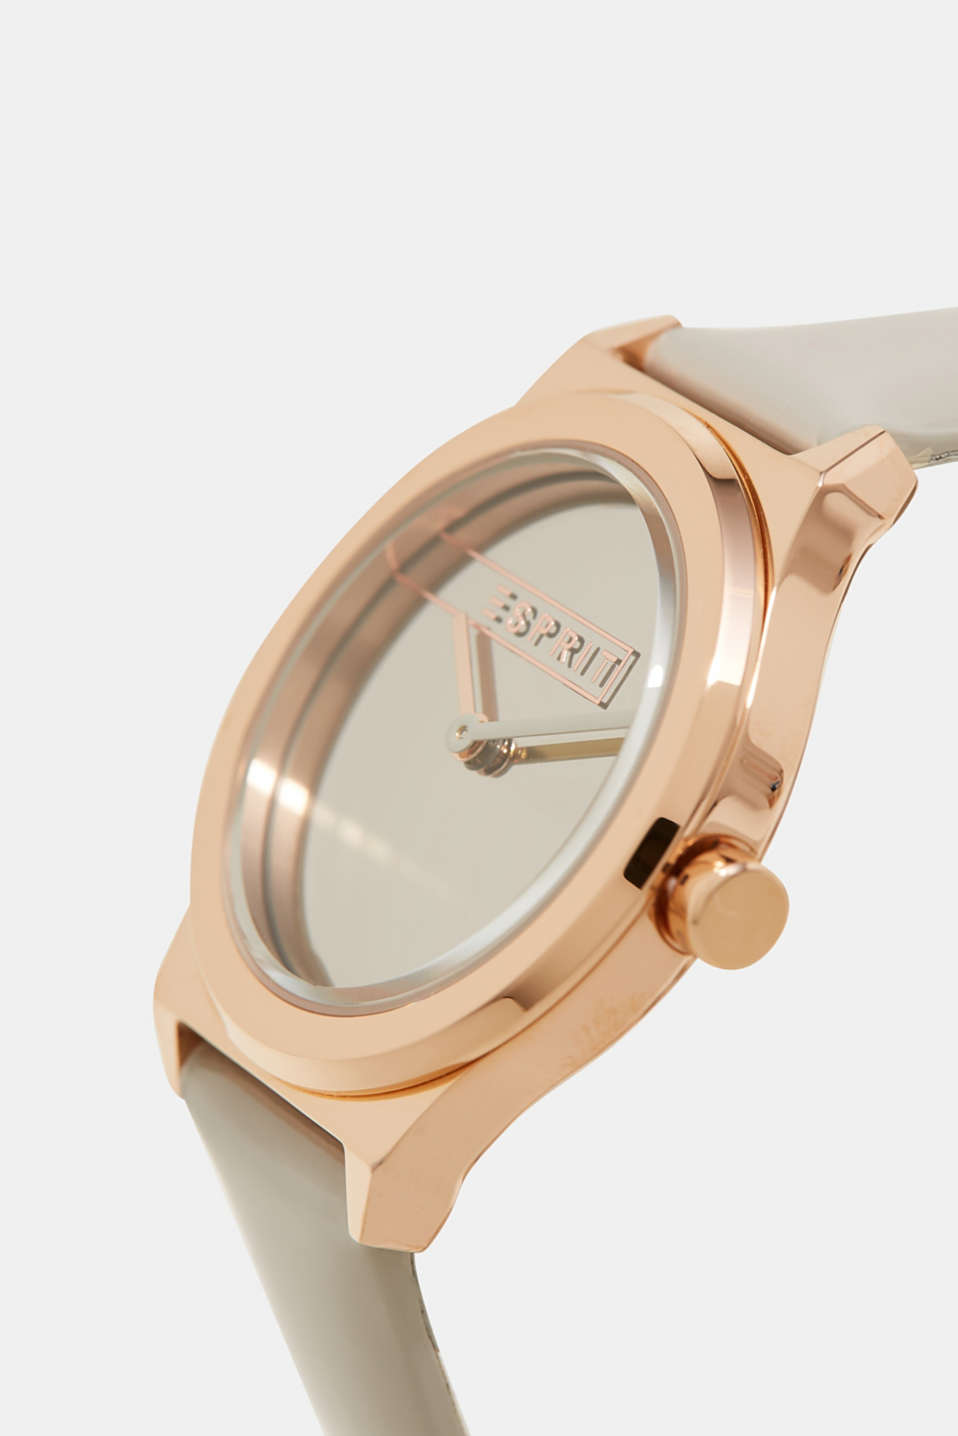 Rose gold watch with a patent leather strap